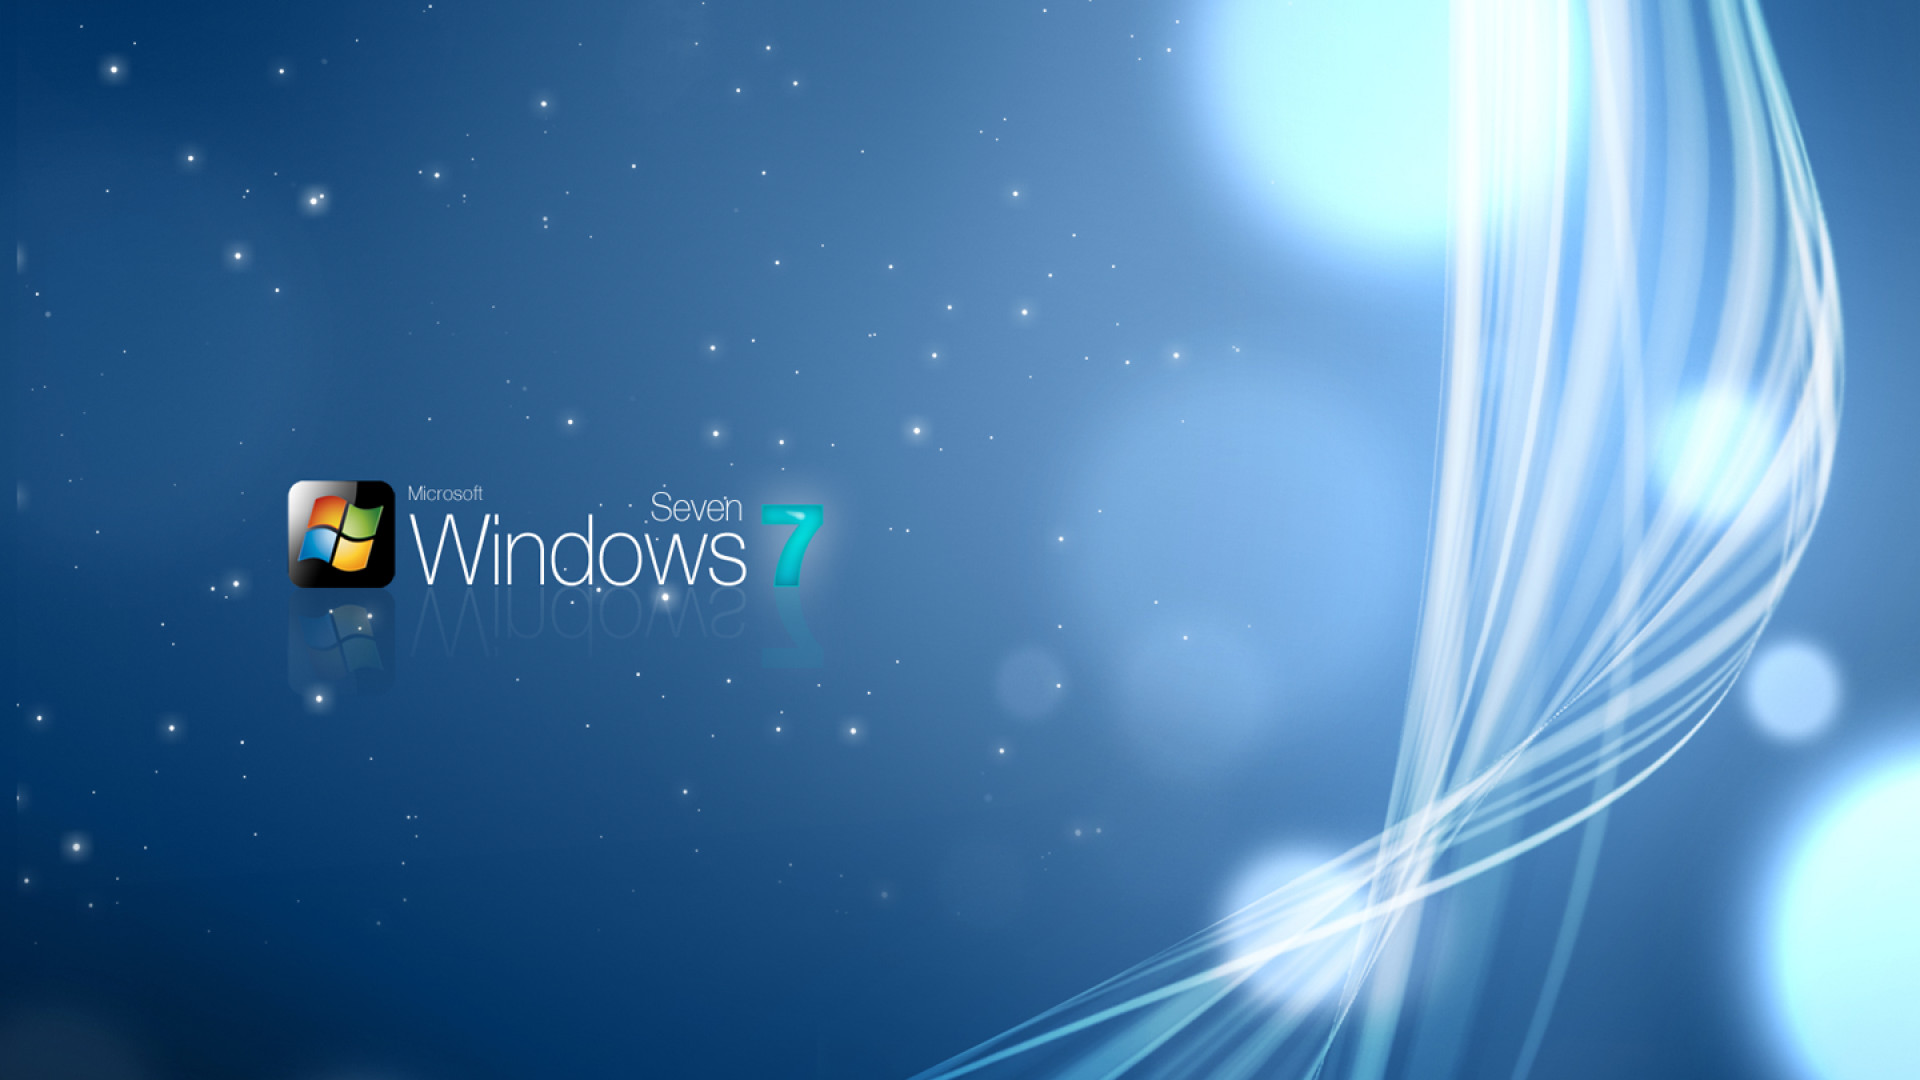 Windows 7 Sparkly Wallpaper – HD Wallpapers